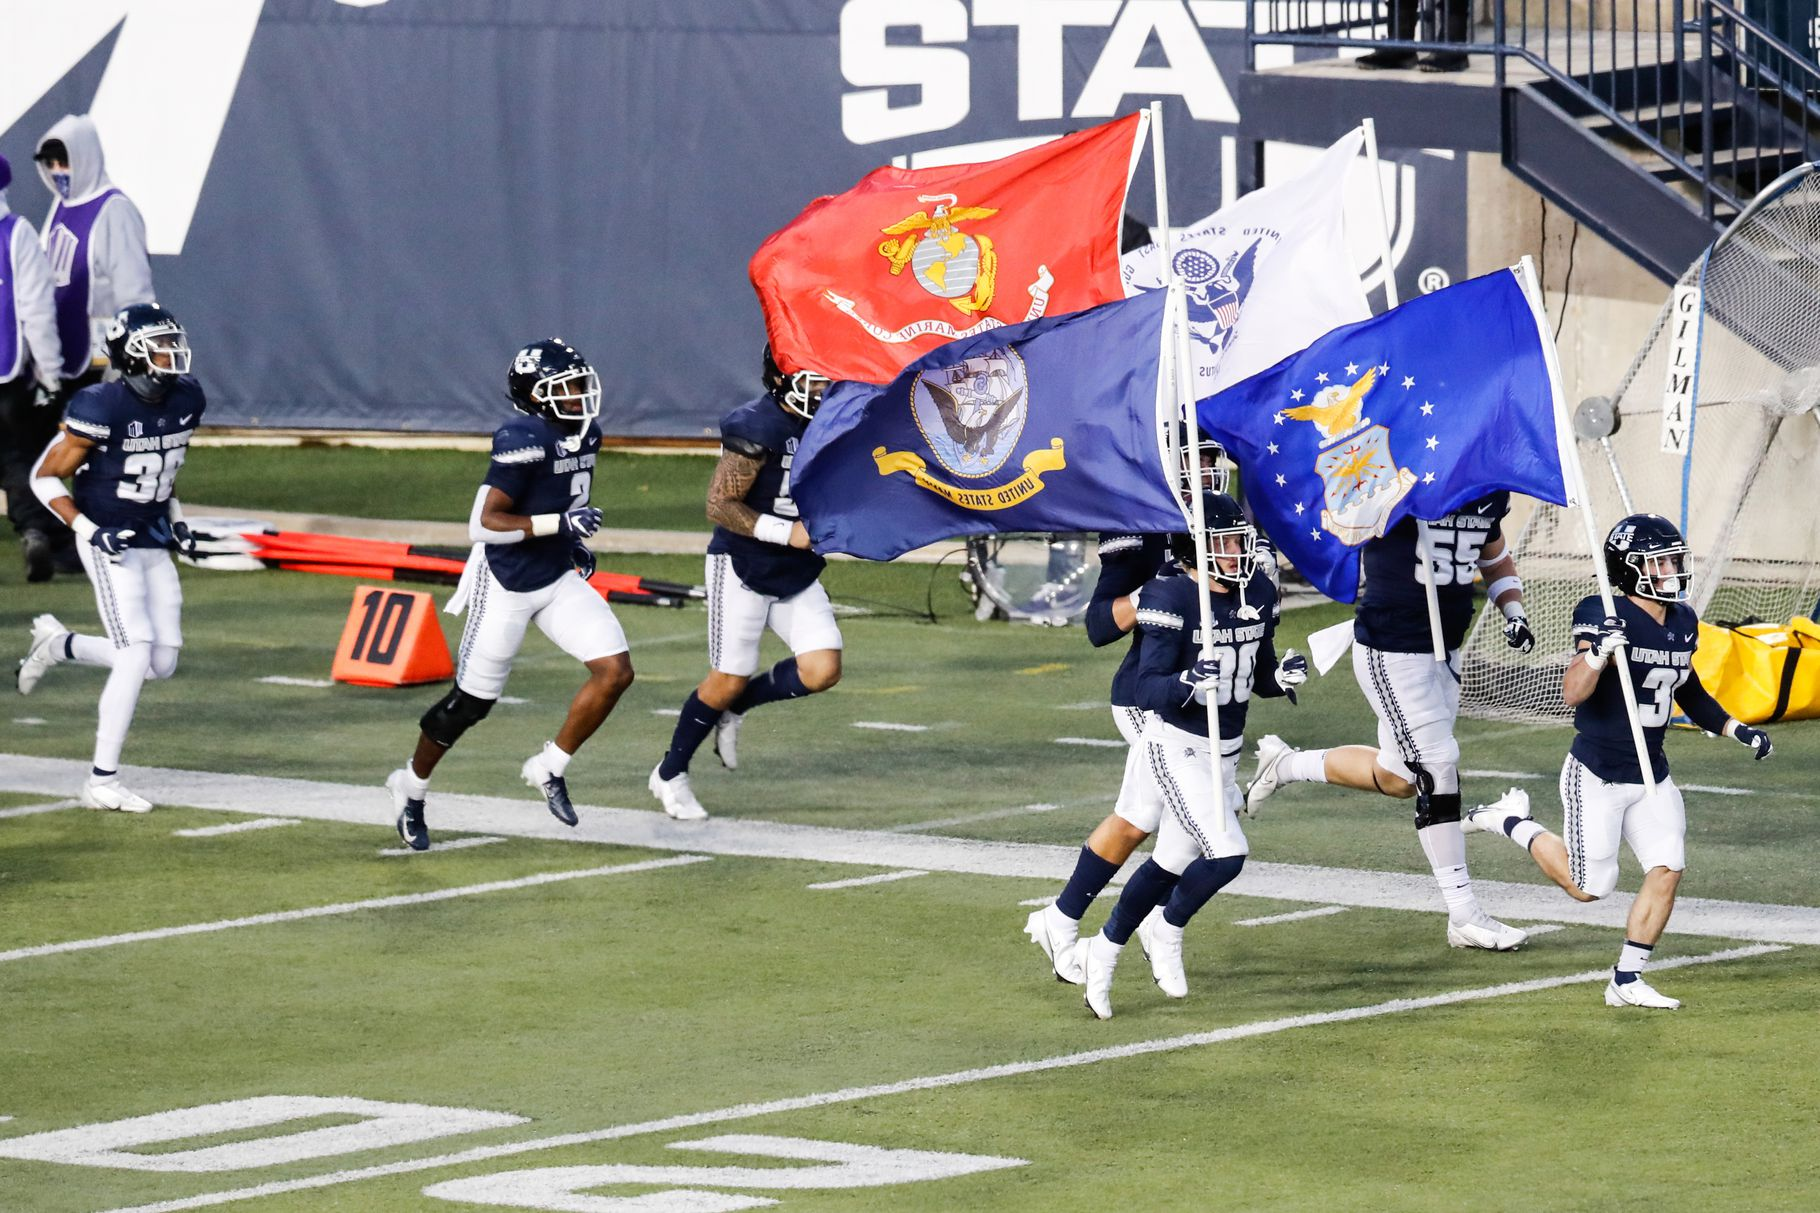 Utah State Aggies players run onto the field before a game against the New Mexico Lobos.